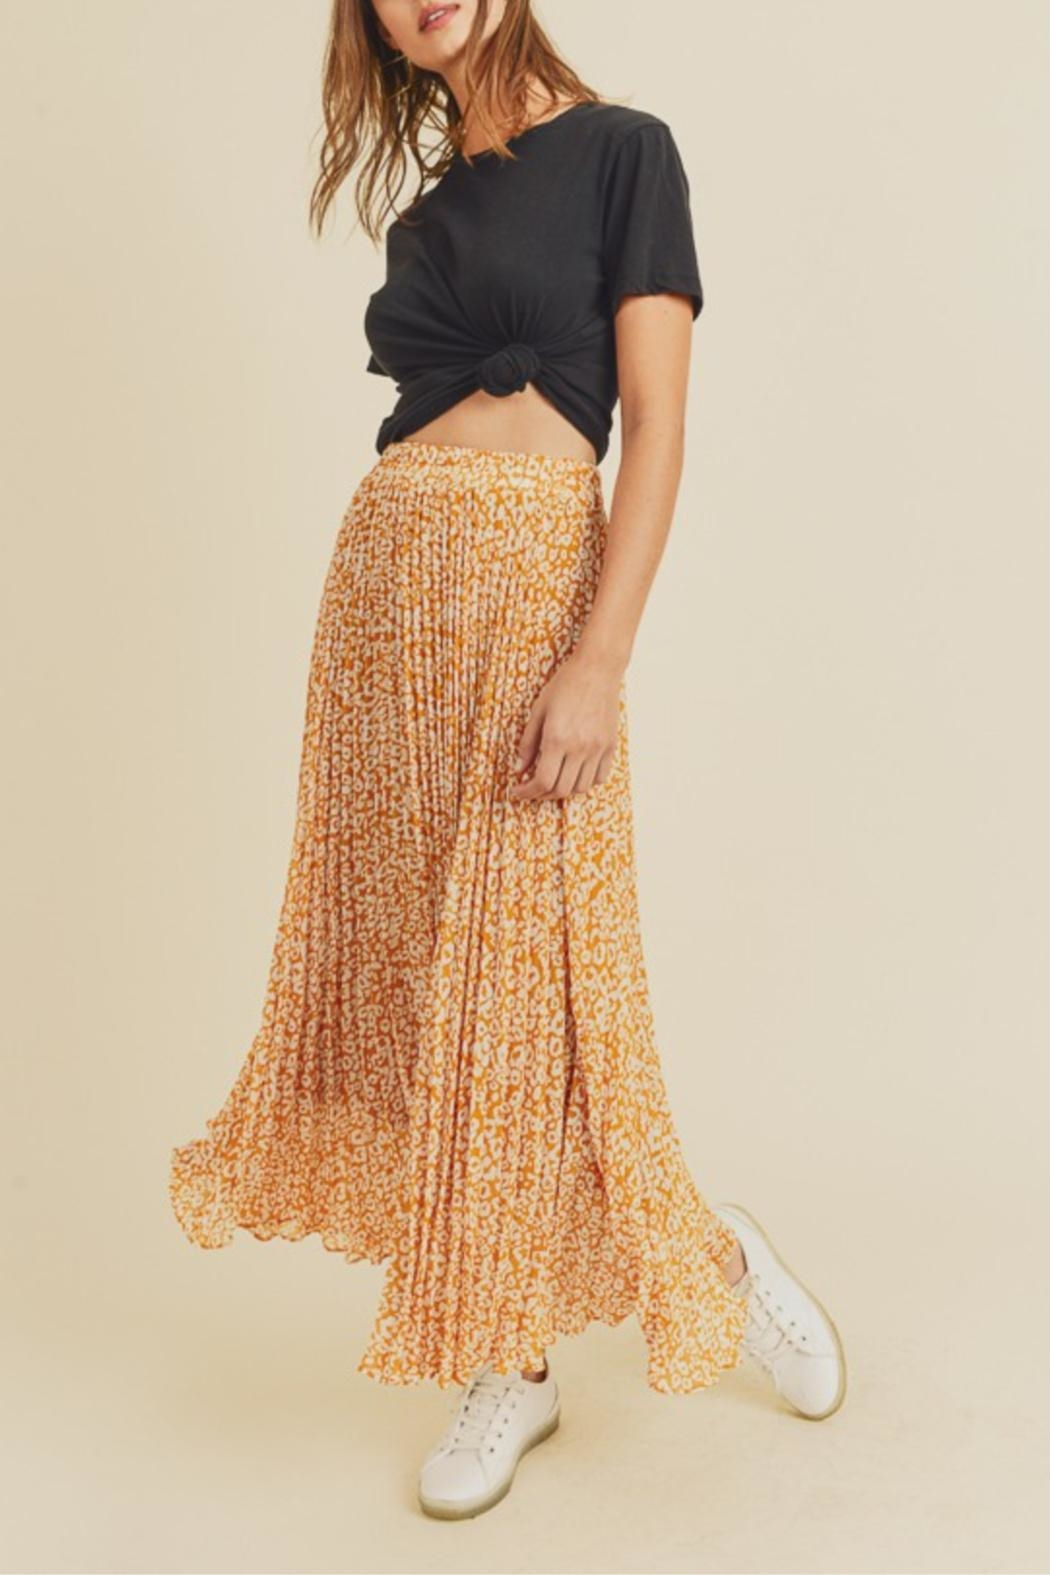 In Loom Dancing Leopard Skirt - Front Full Image